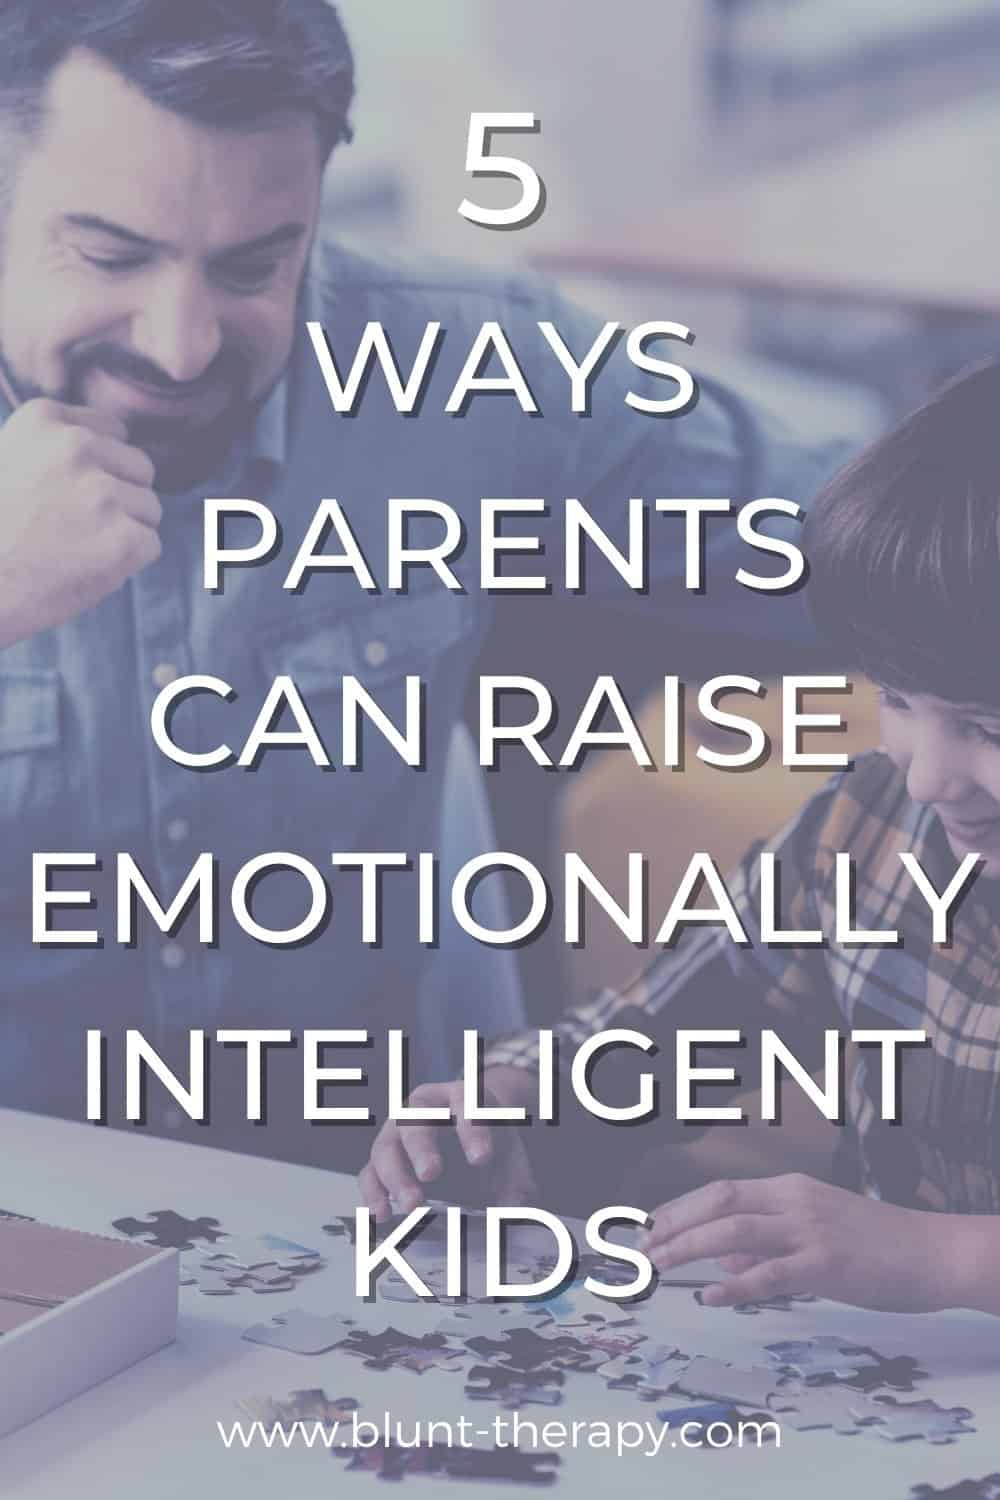 5 Ways Parents Can Raise Emotionally Intelligent Kids